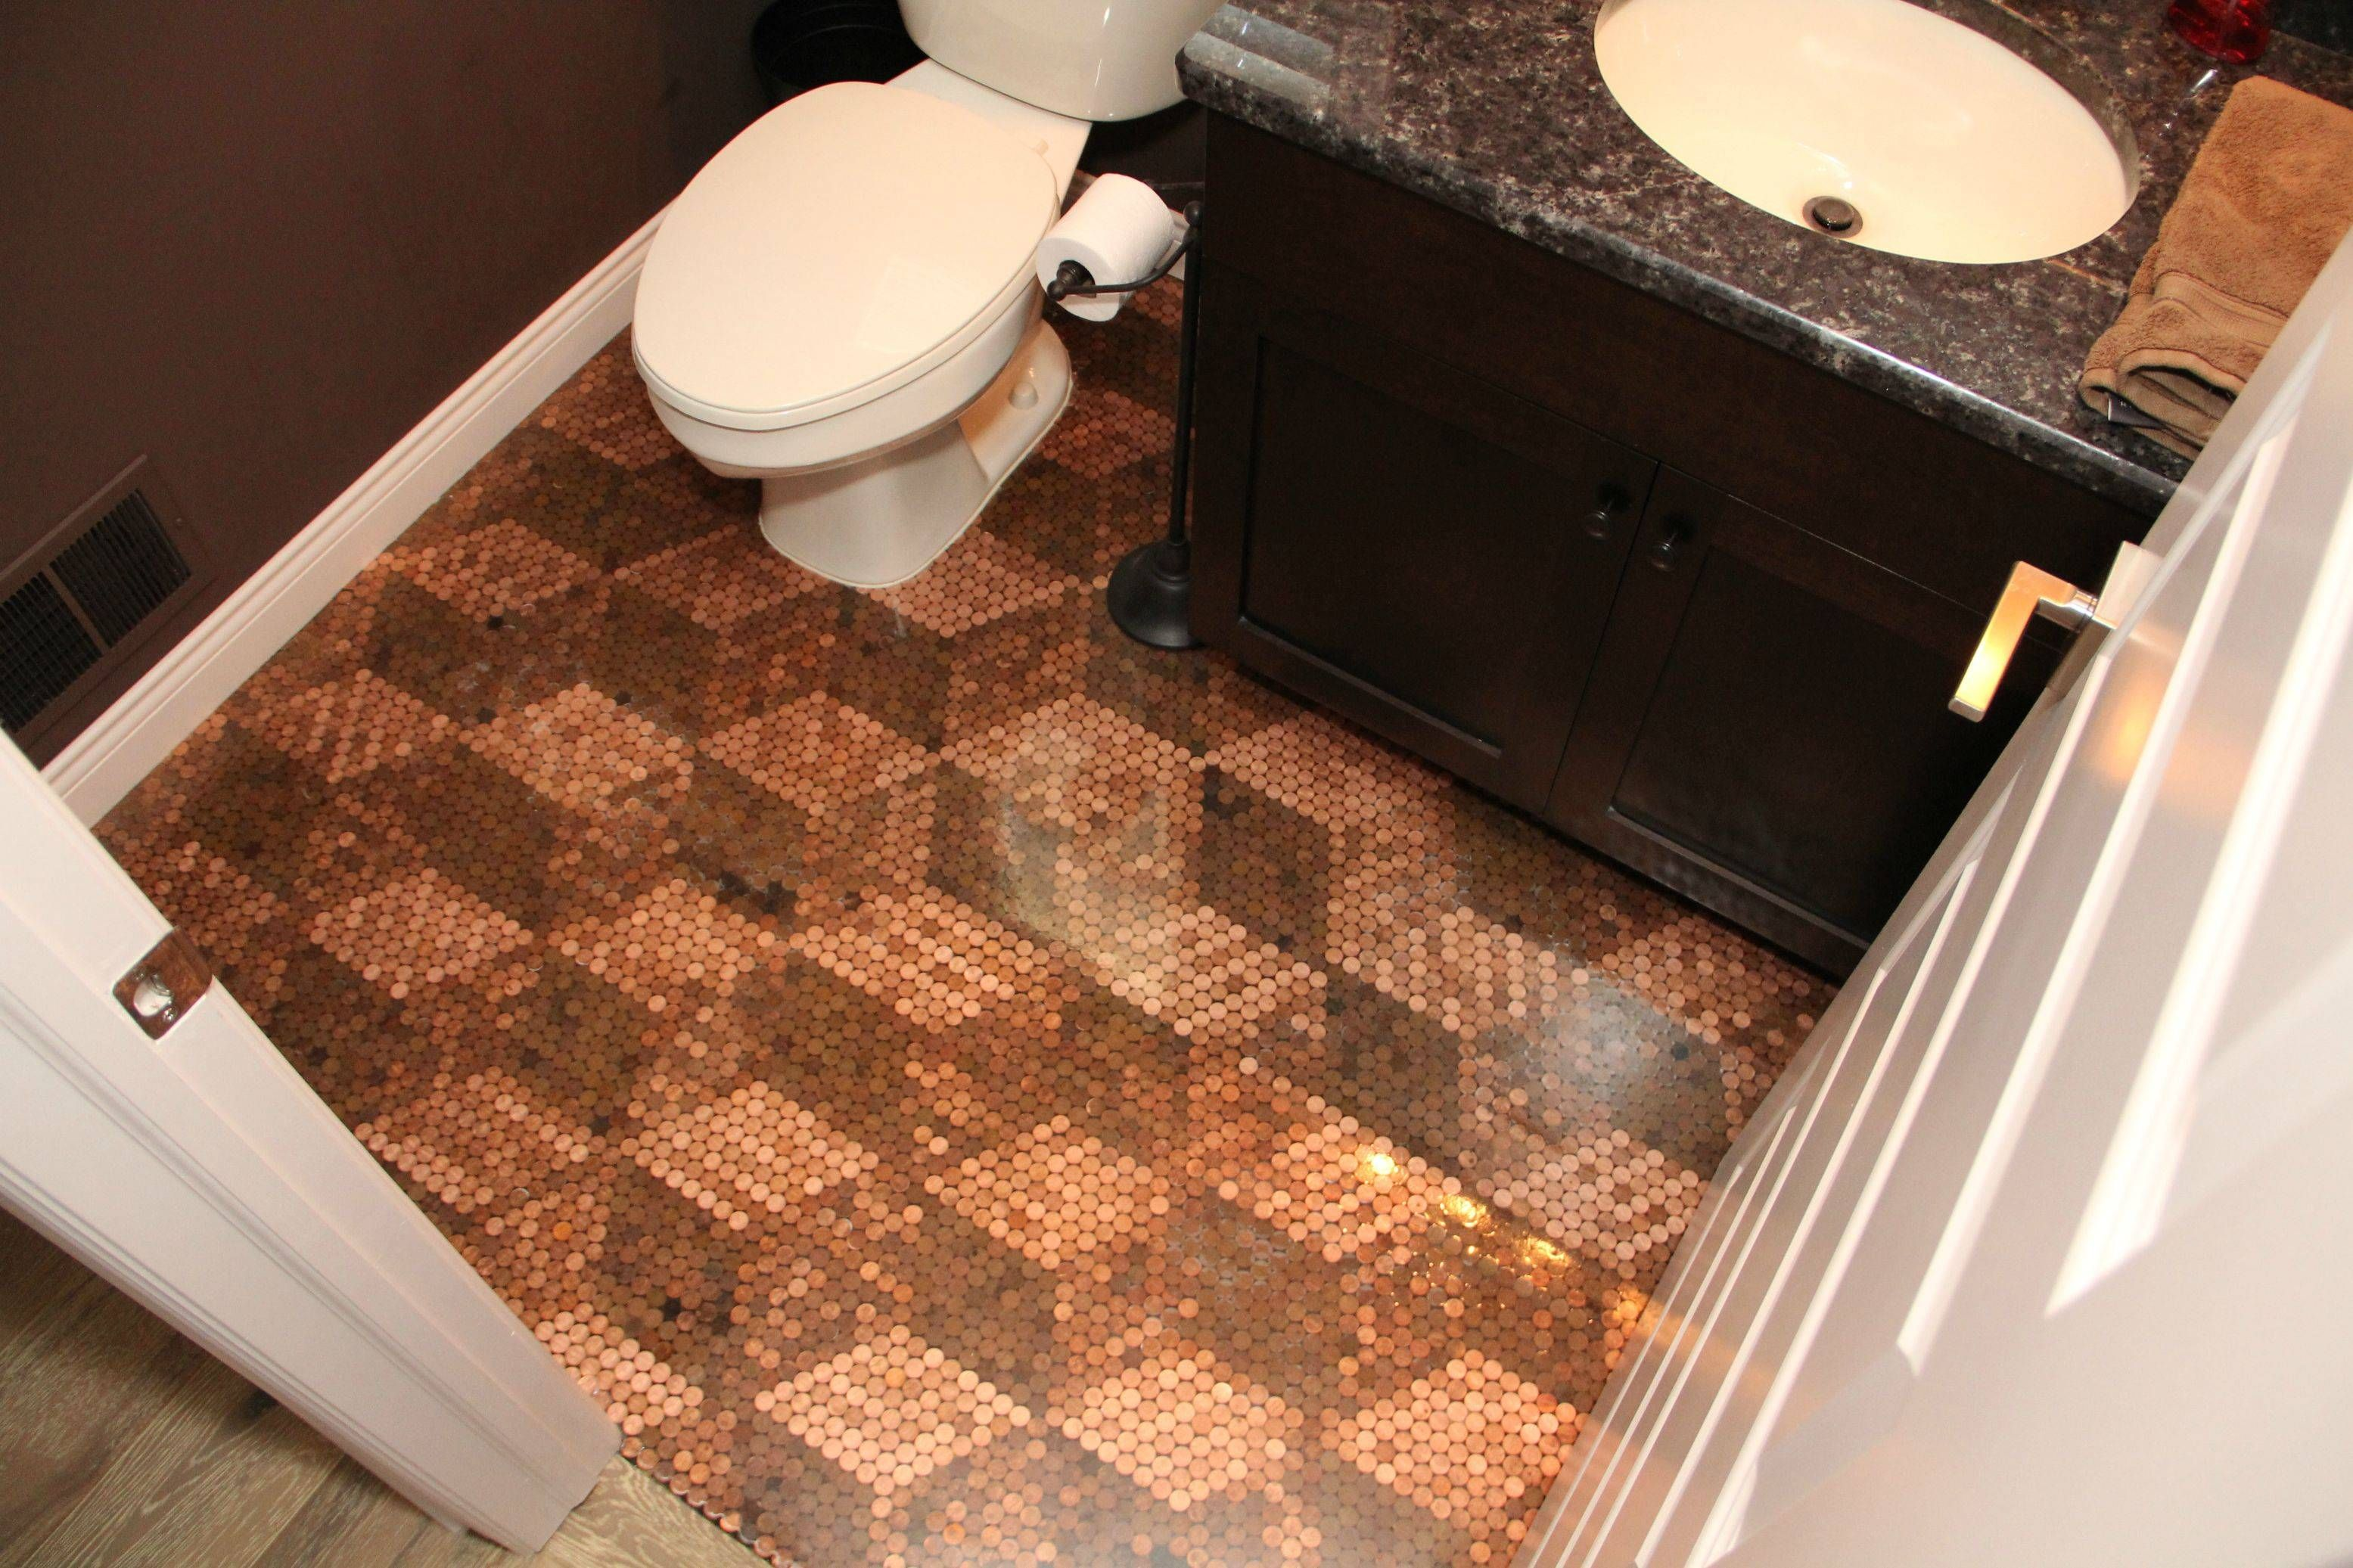 Here Is The Final Penny Floor Update We Finished The Bathroom And The House Now That We Re All Settled In Penny Floor Penny Floor Designs Unusual Bathrooms